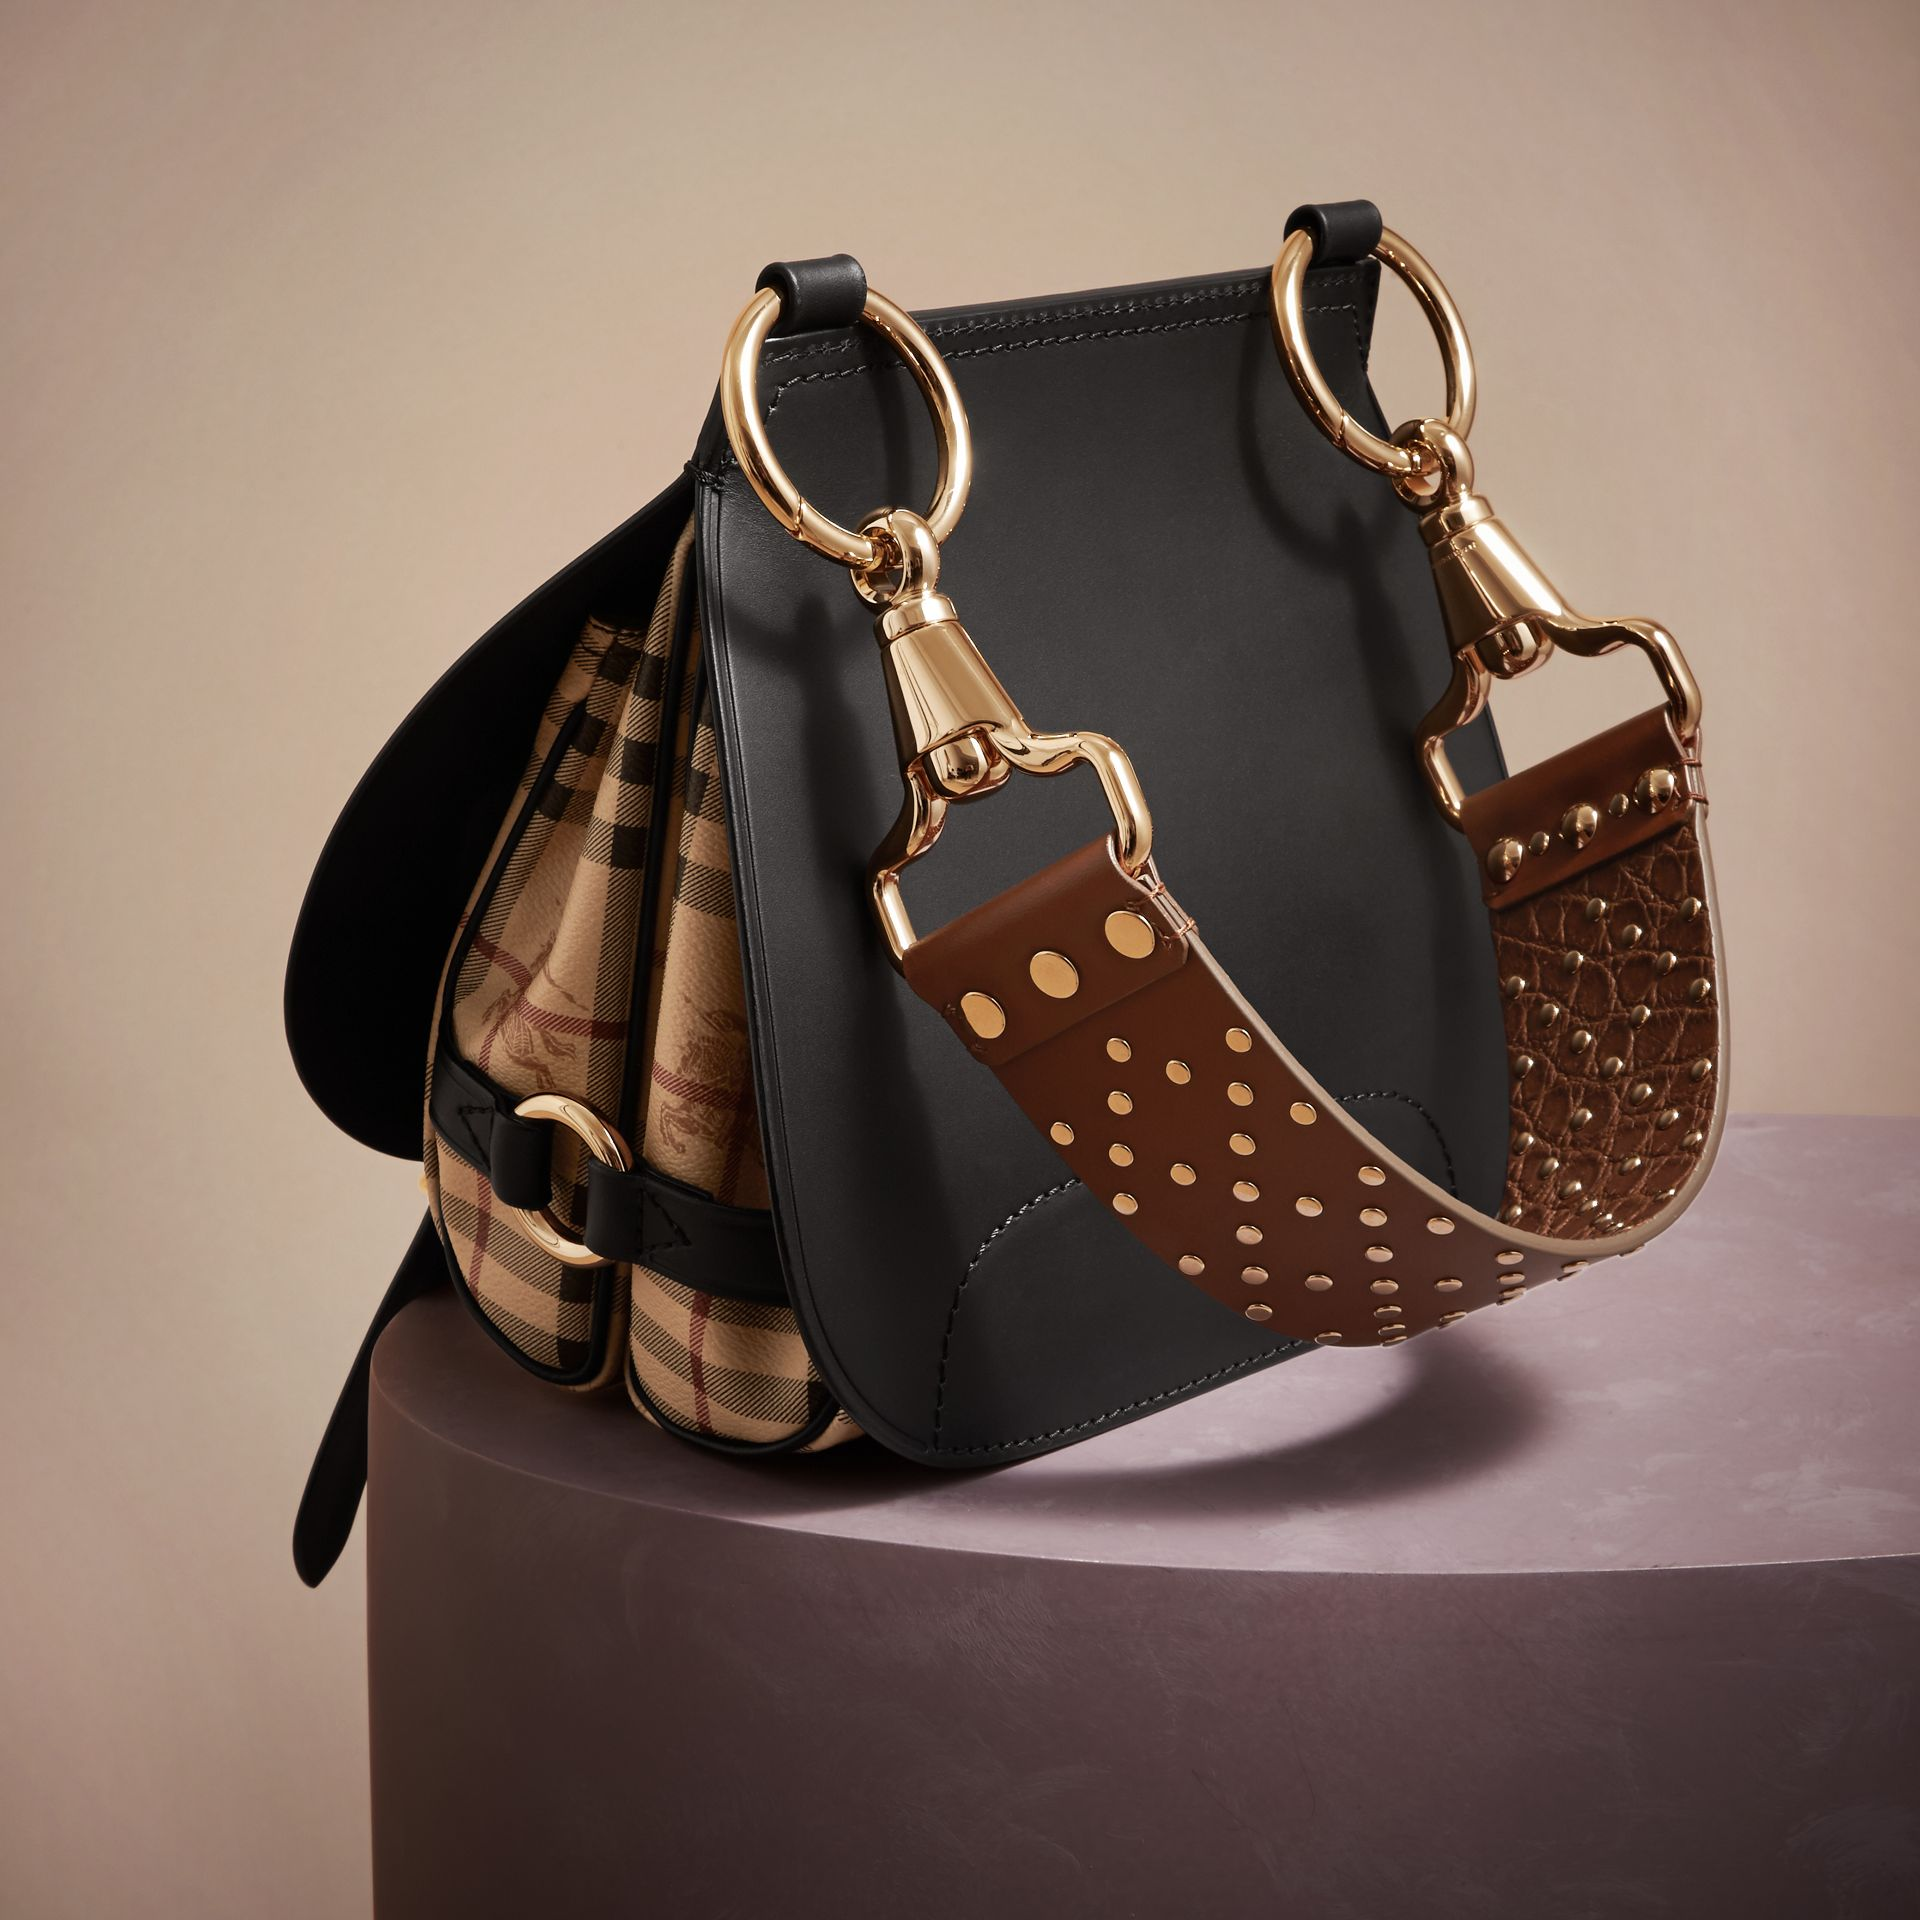 Noir Sac The Bridle en cuir, tissu Haymarket check et alligator - photo de la galerie 5